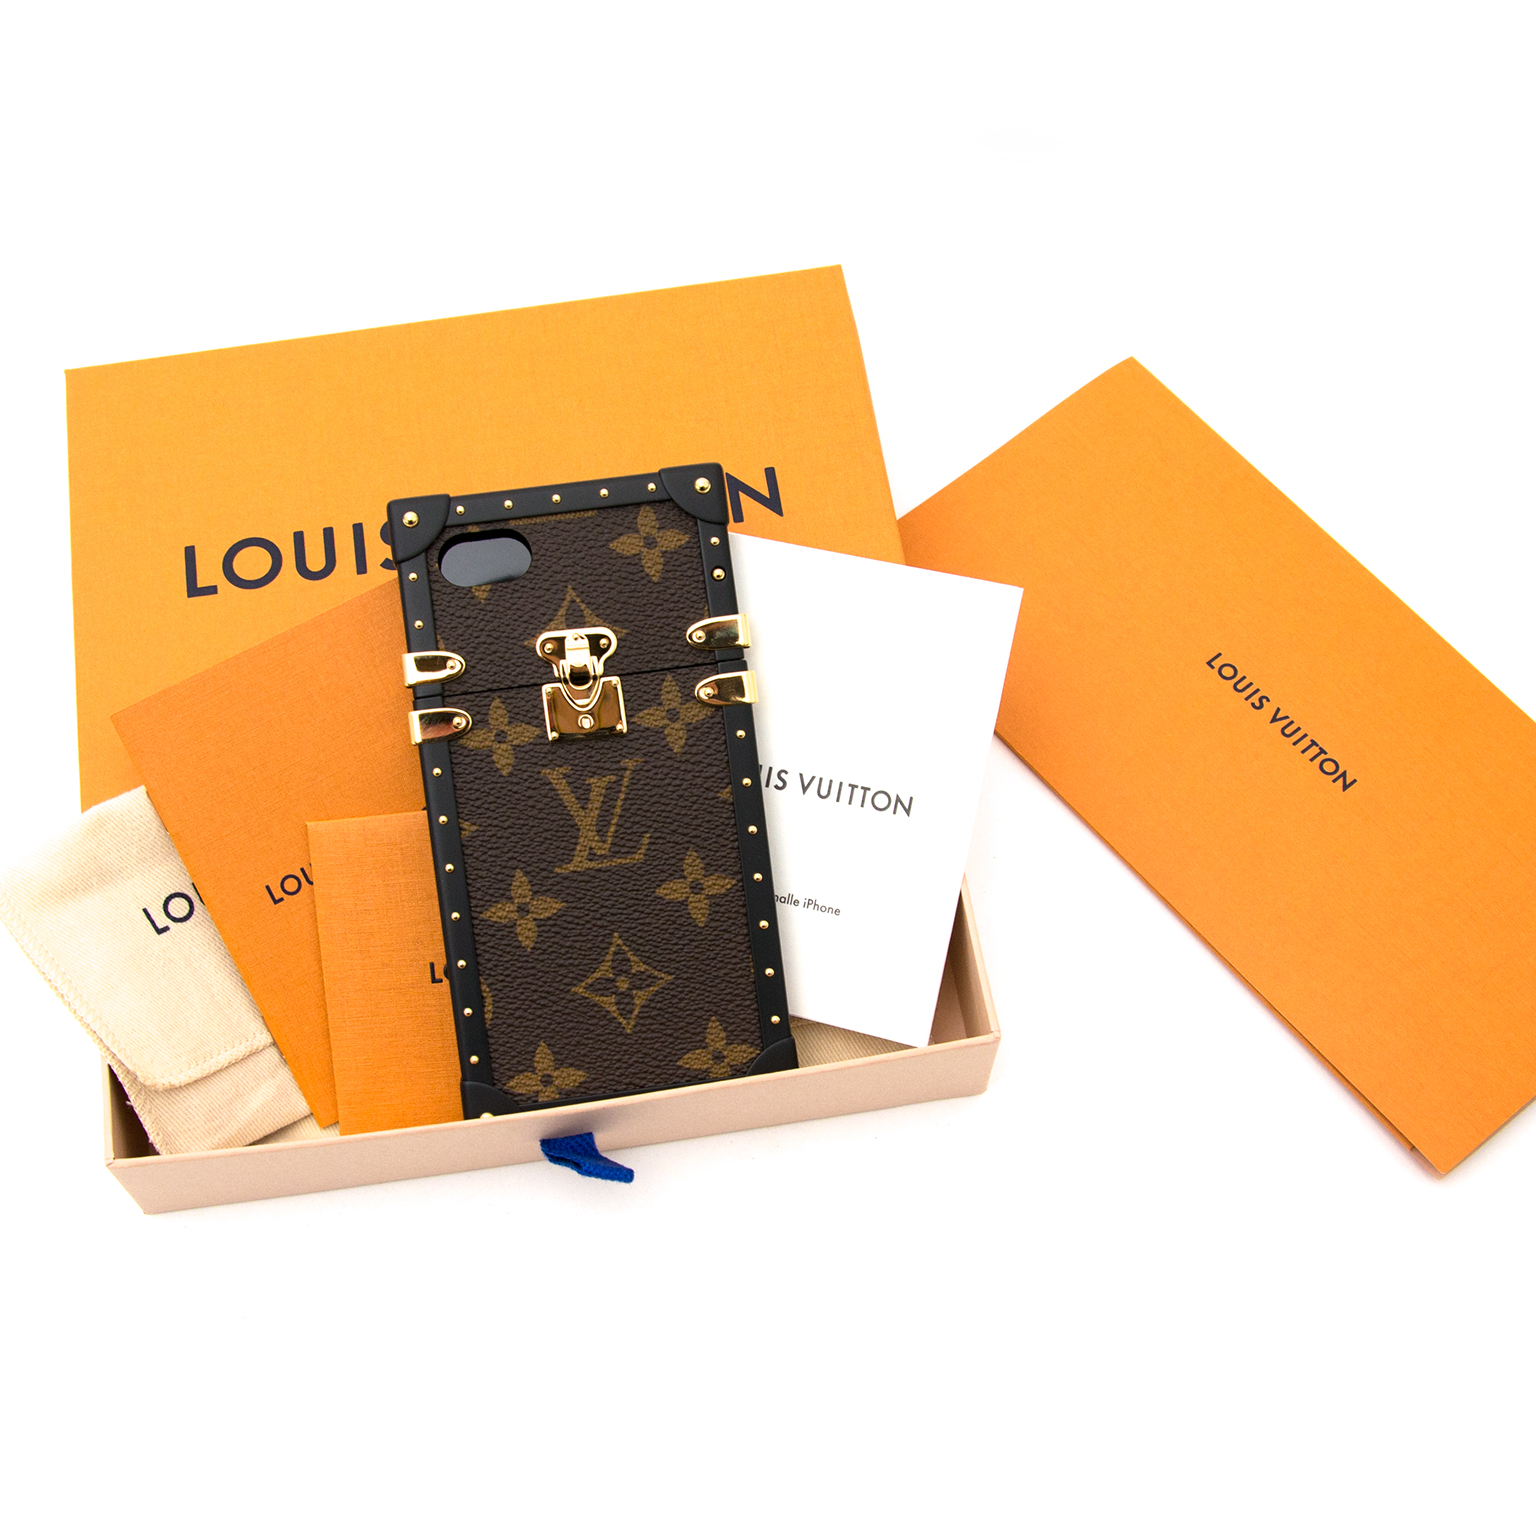 The Louis Vuitton gadget that everybody wants but is sold out, buy it safe and secure on Labellov